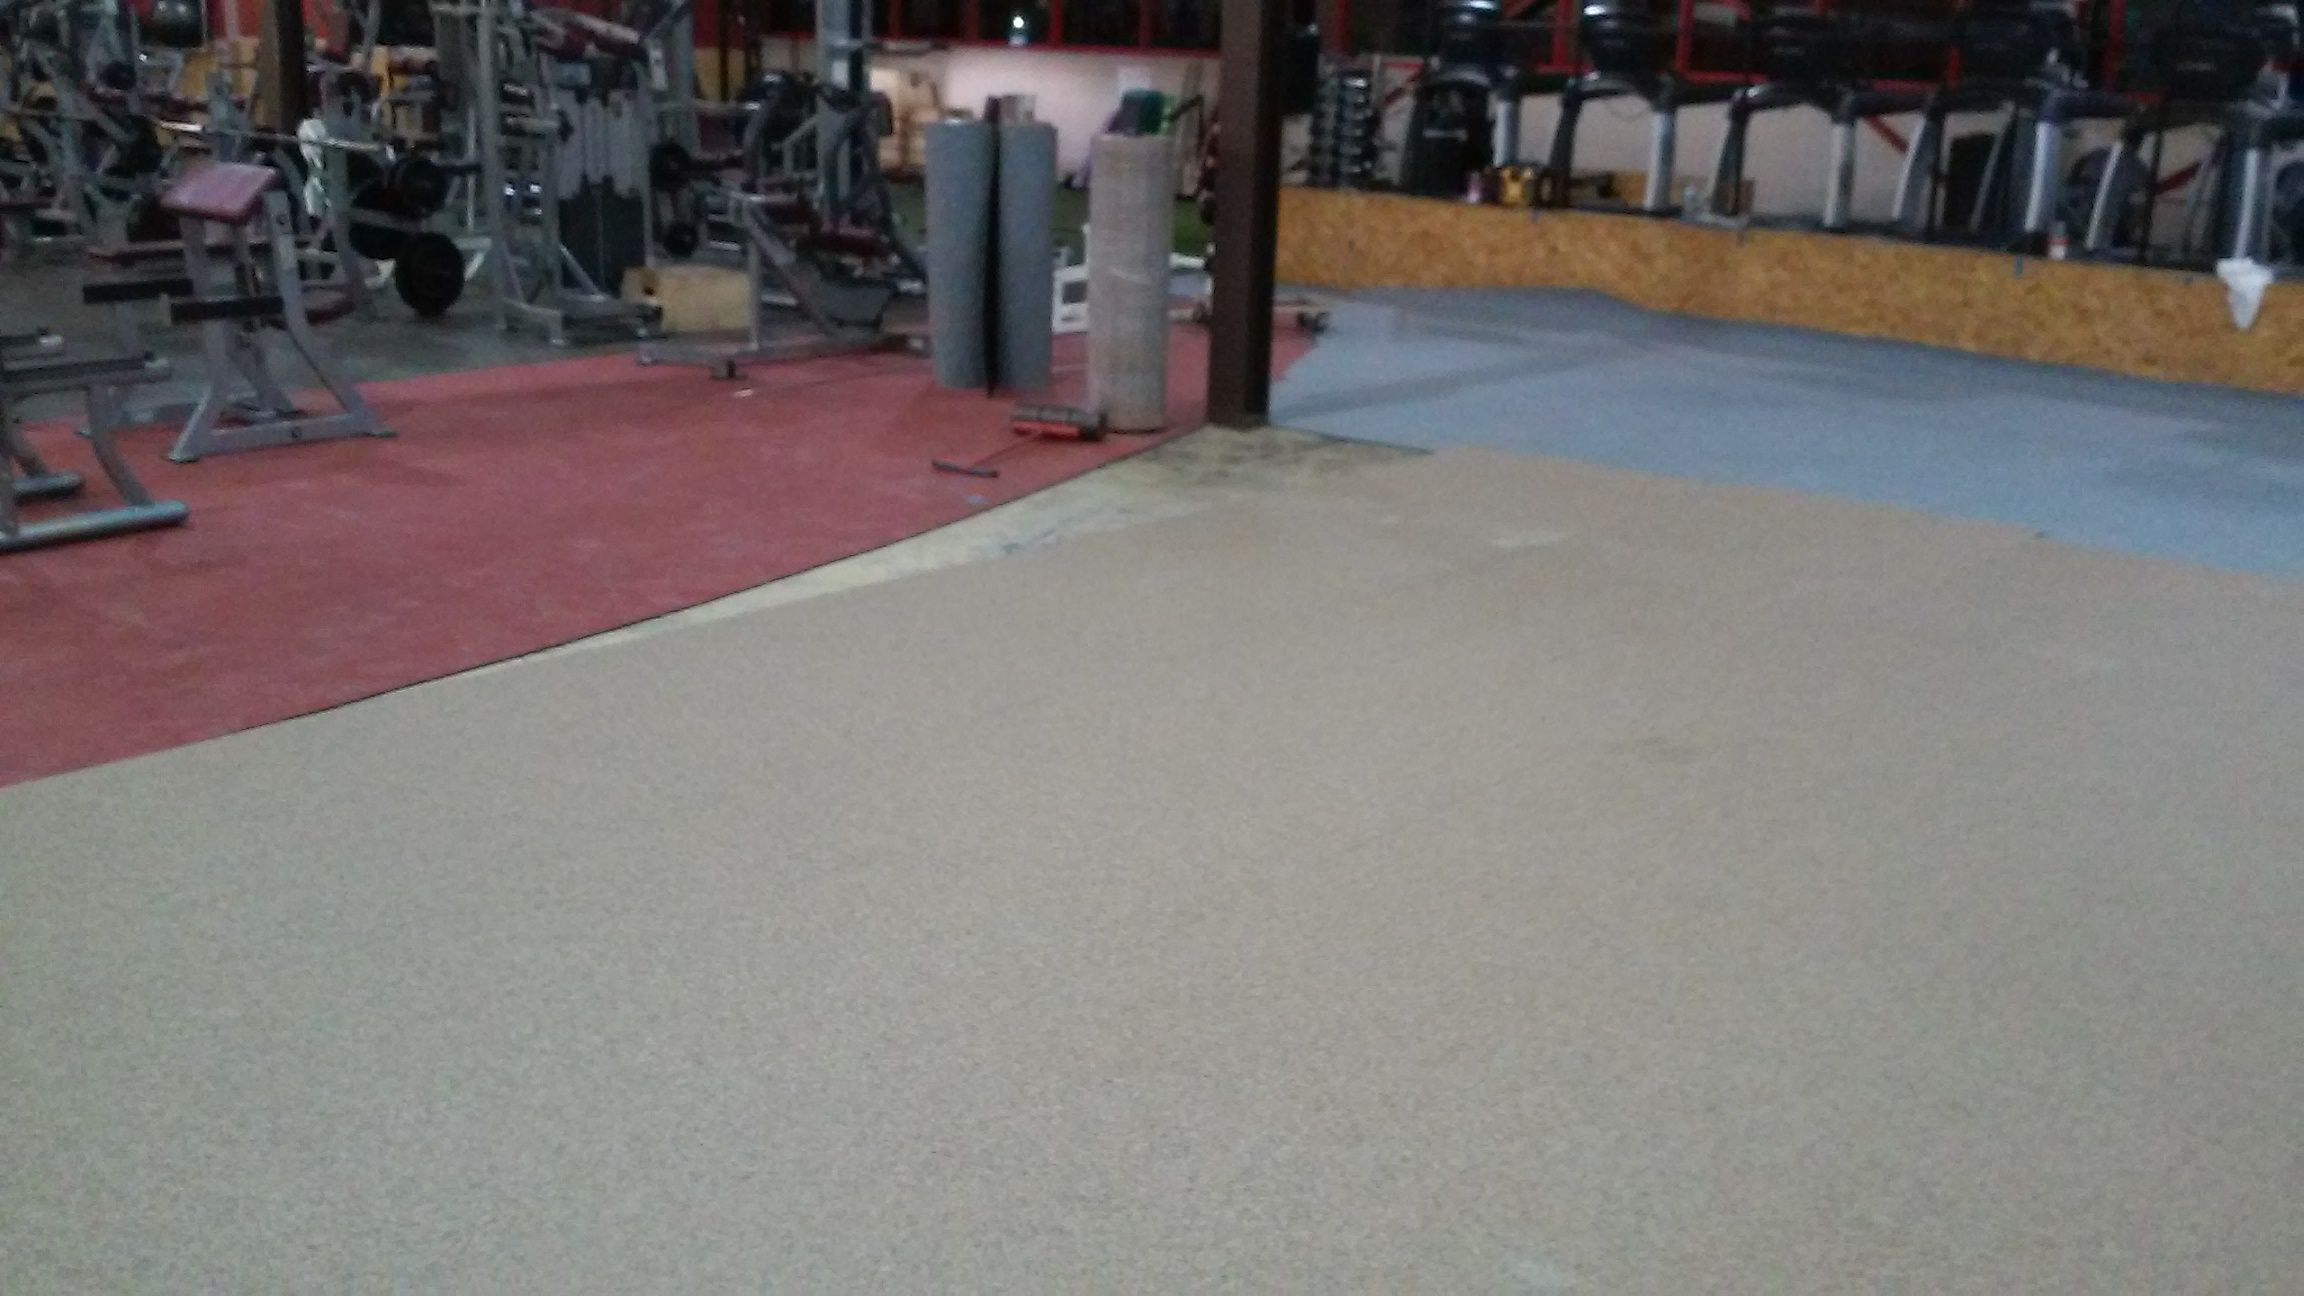 Edge Milford getting layed out w Ecore Performance Series Red, Tan, and Gray.